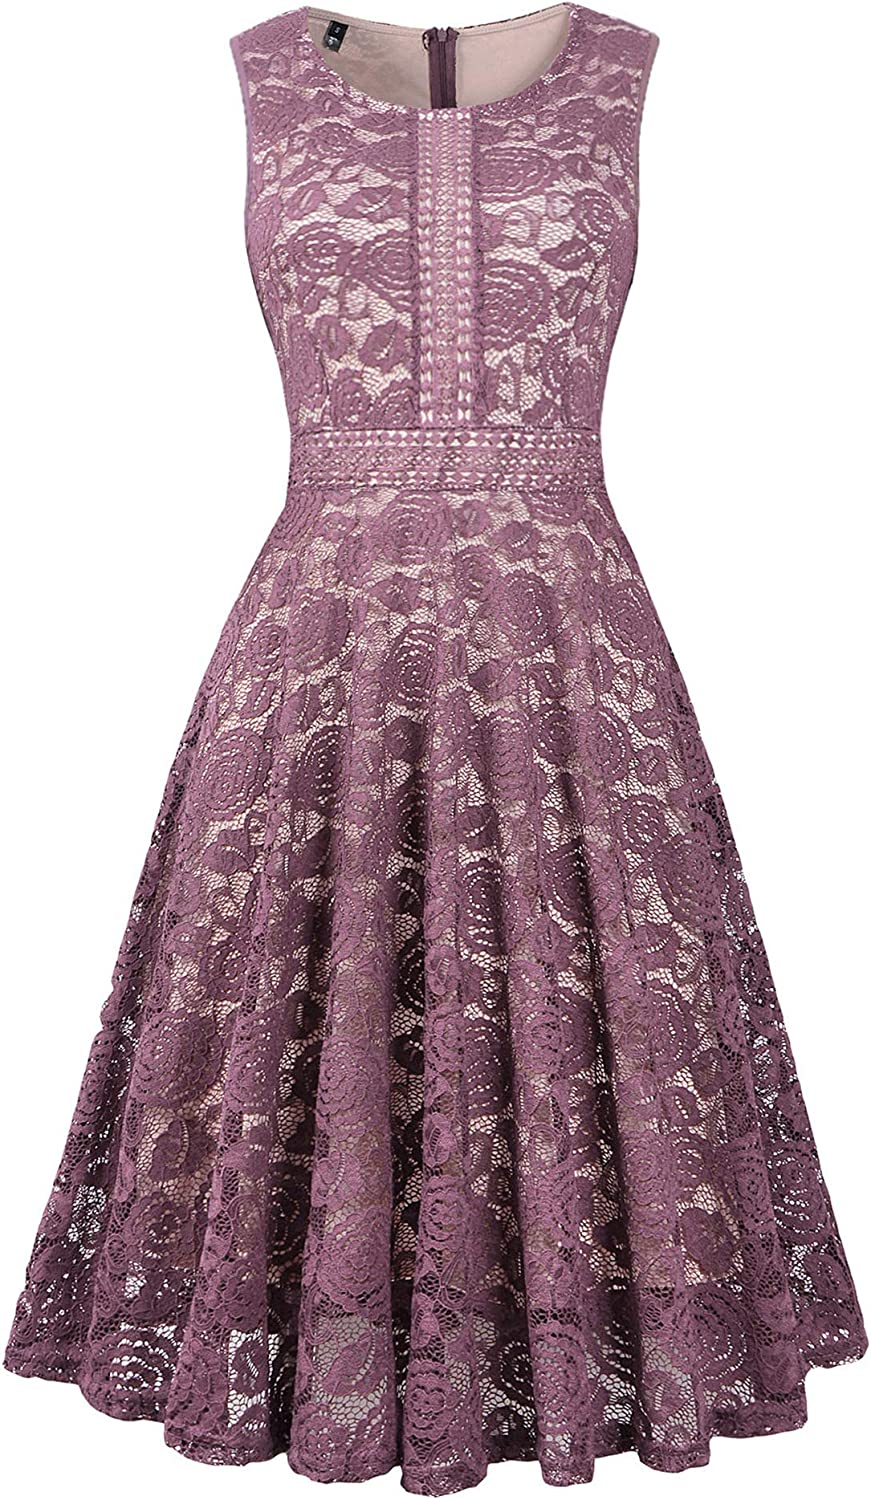 Women's Wedding Dress Lace Bridesmaid Prom Vintage Cocktail Church Dresses Cocktail Party Swing Dresses